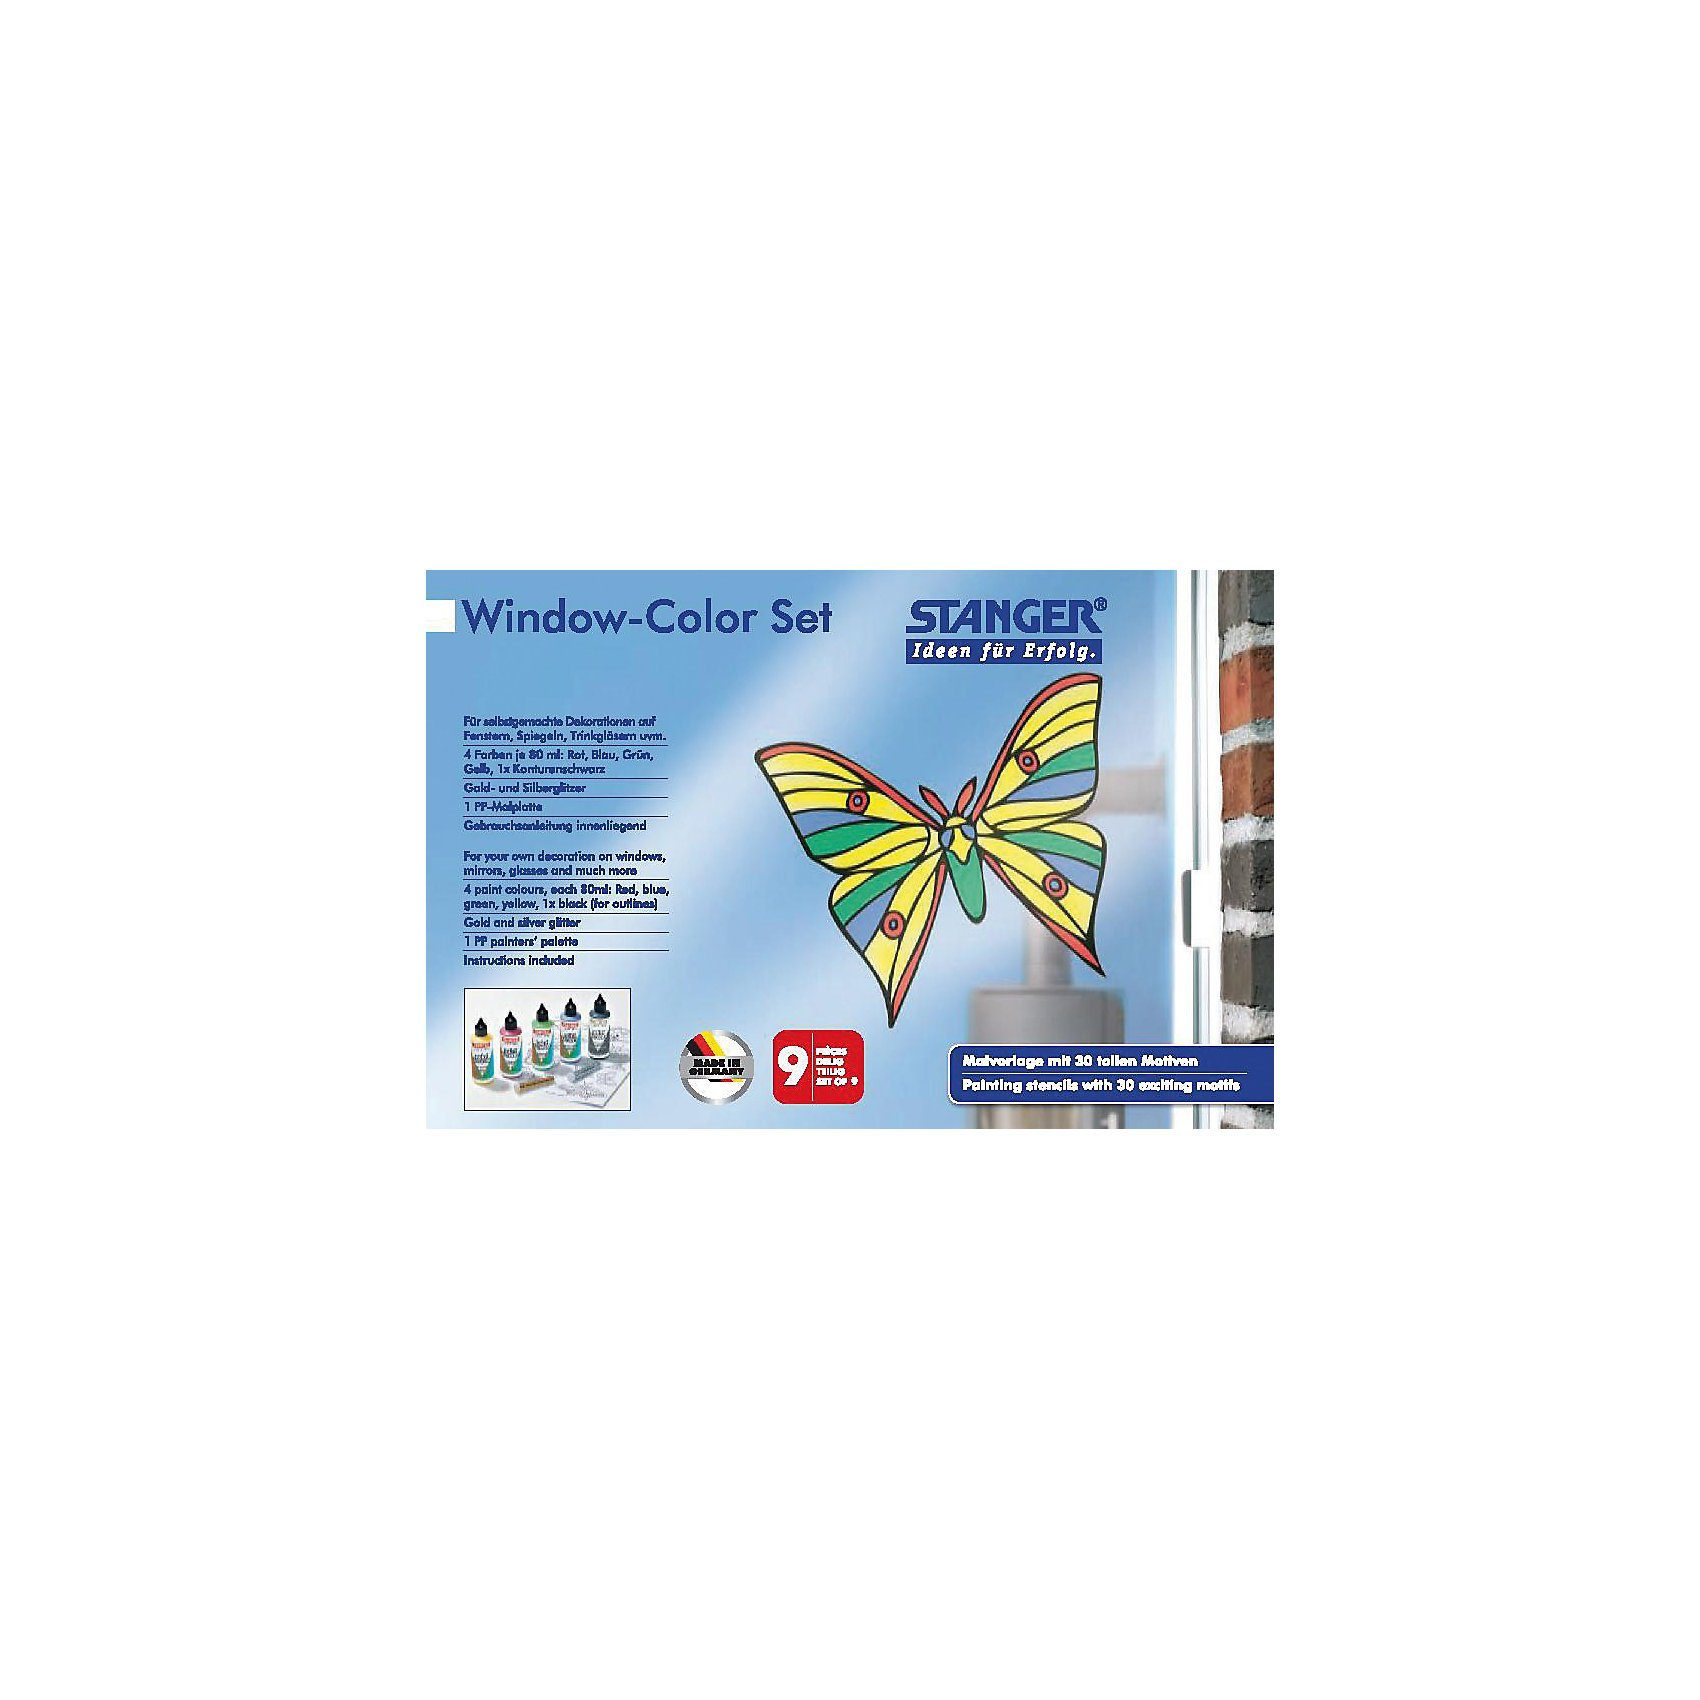 Stanger Window Color Set Schmetterling, 9-tlg.